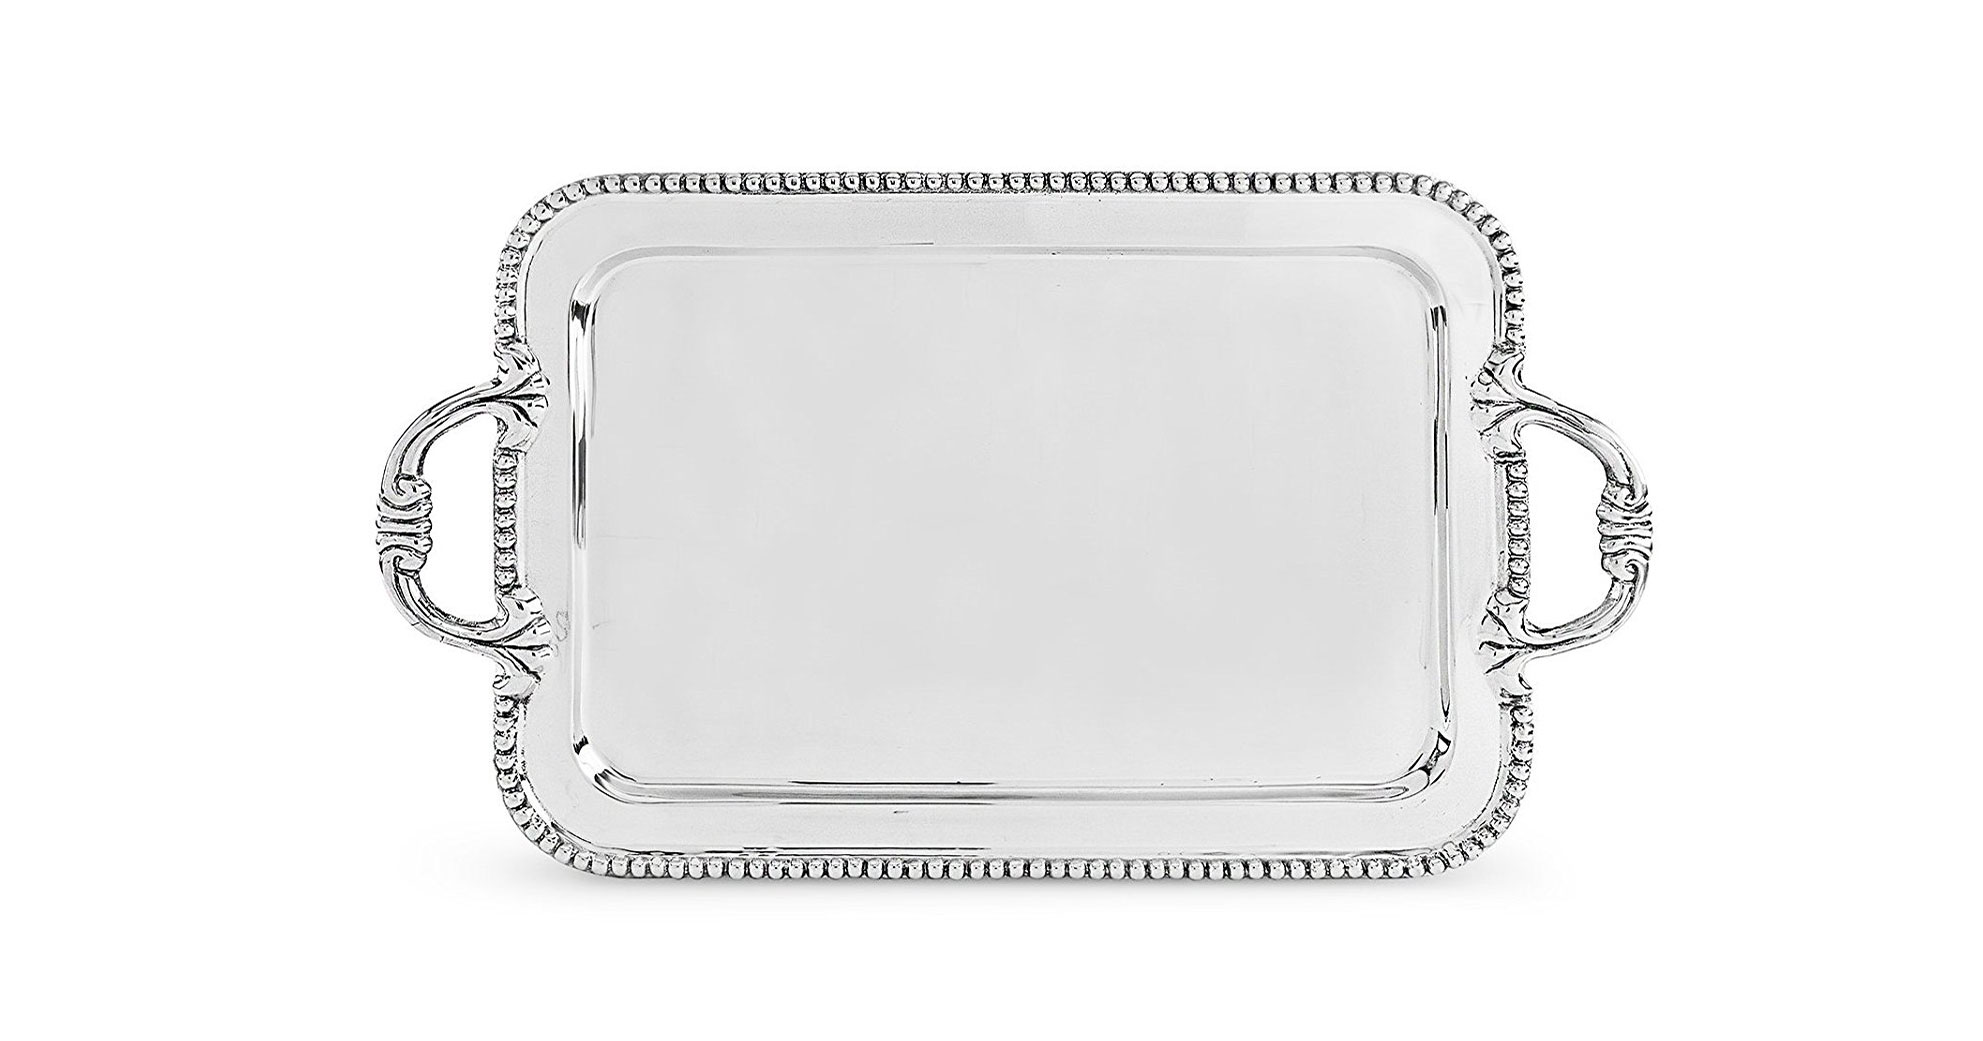 RX_1804_The 5 Serving Pieces Every Hostess Needs_A Dressy Tray